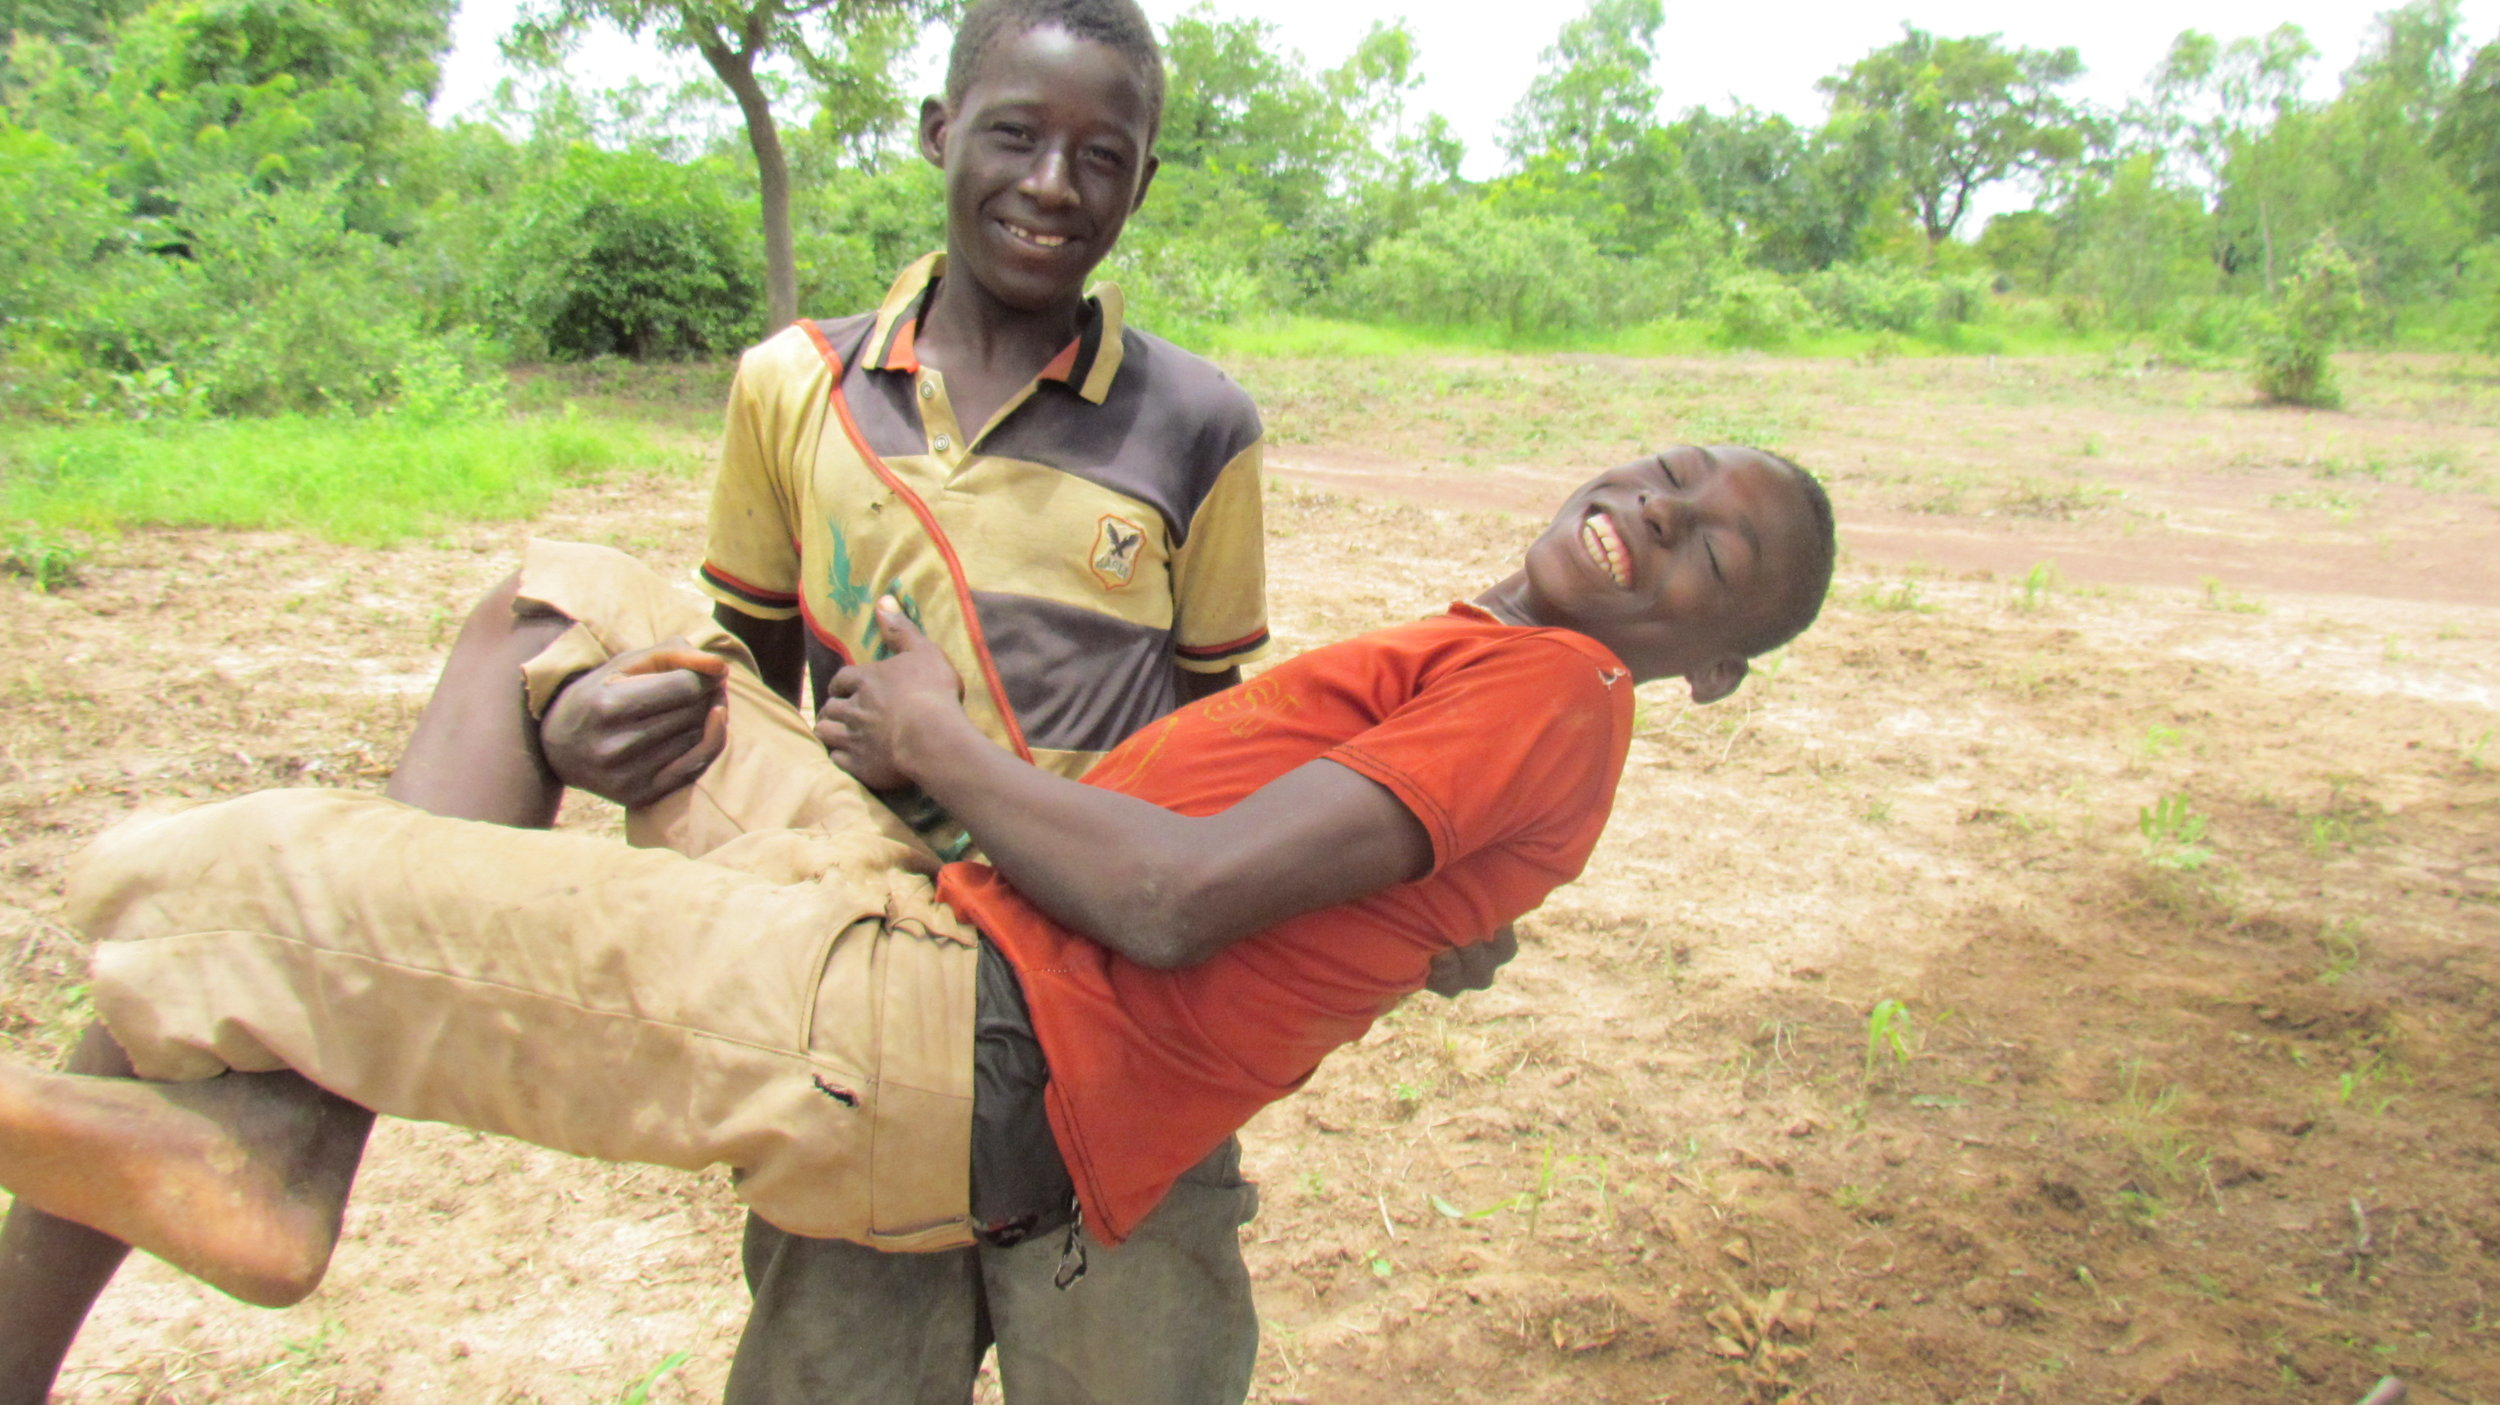 Life isn't all serious even for kids in Mali...horseplay is an international language.